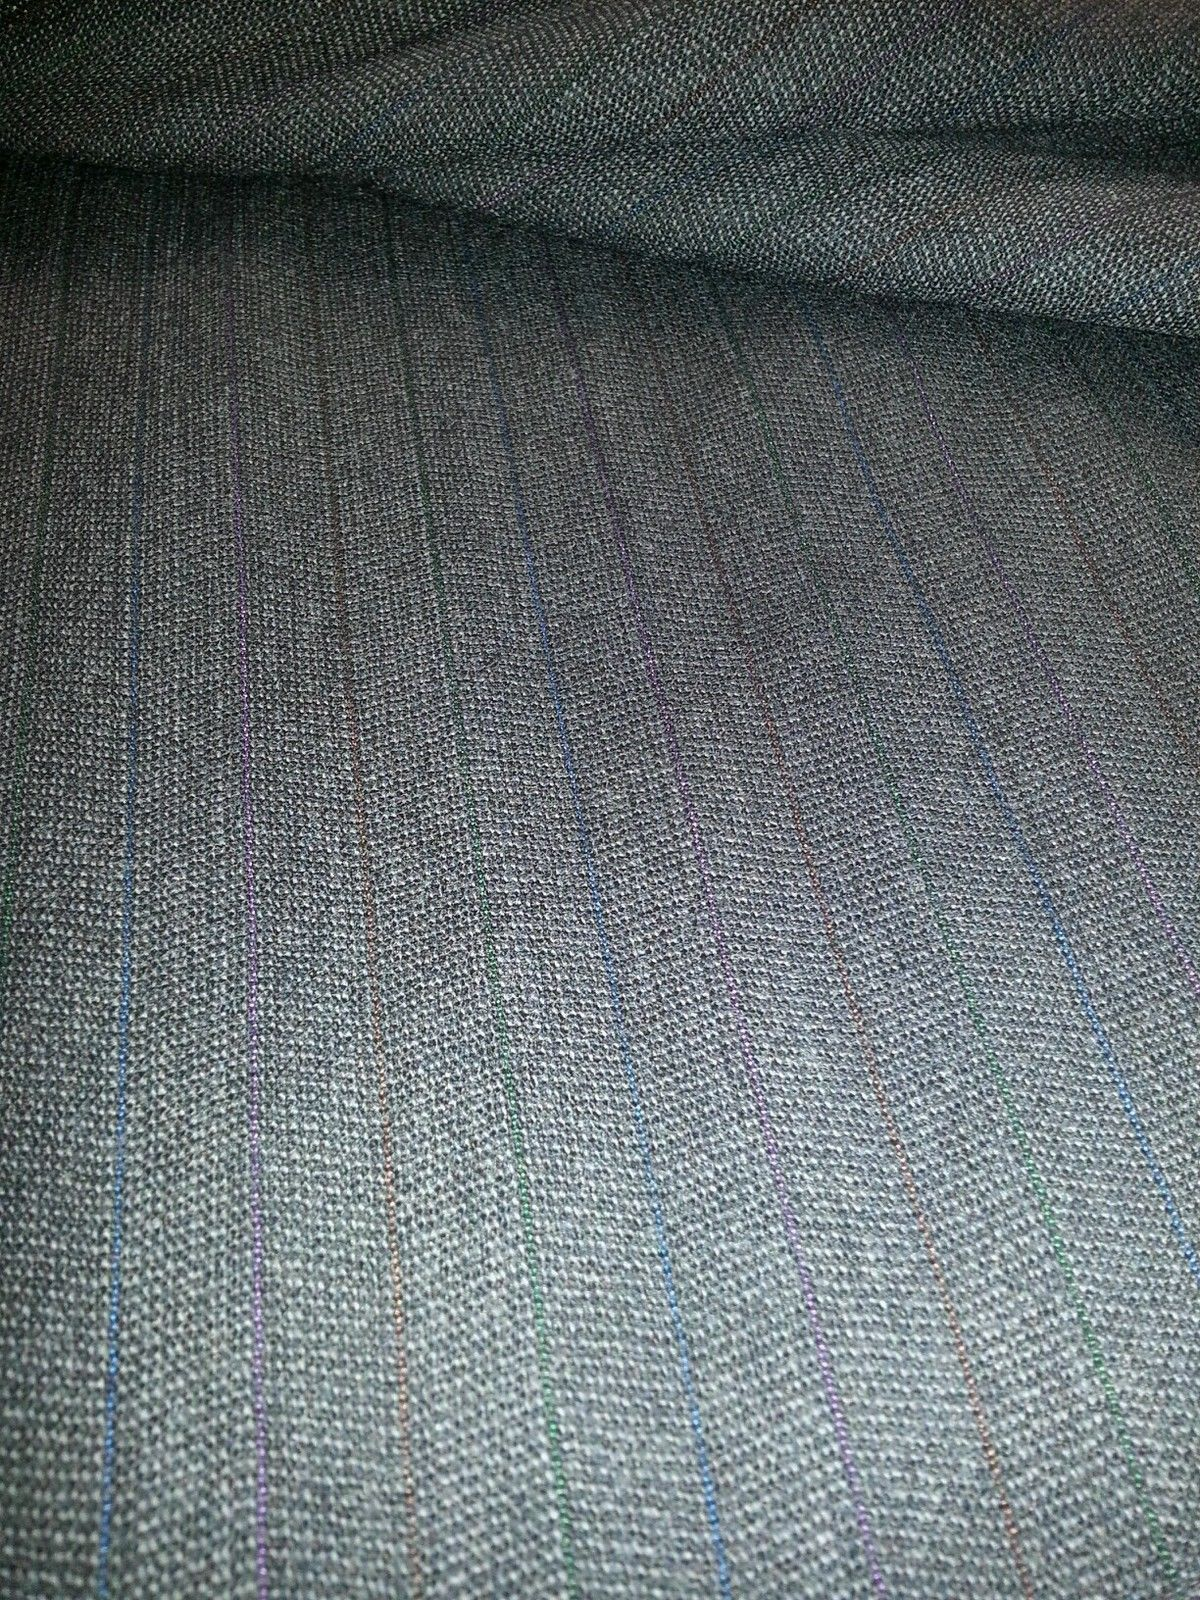 10 YARD Grey  SUPER  WOOL DESIGNER SUIT FABRIC MSRP $1250 FREE SHIPPING!